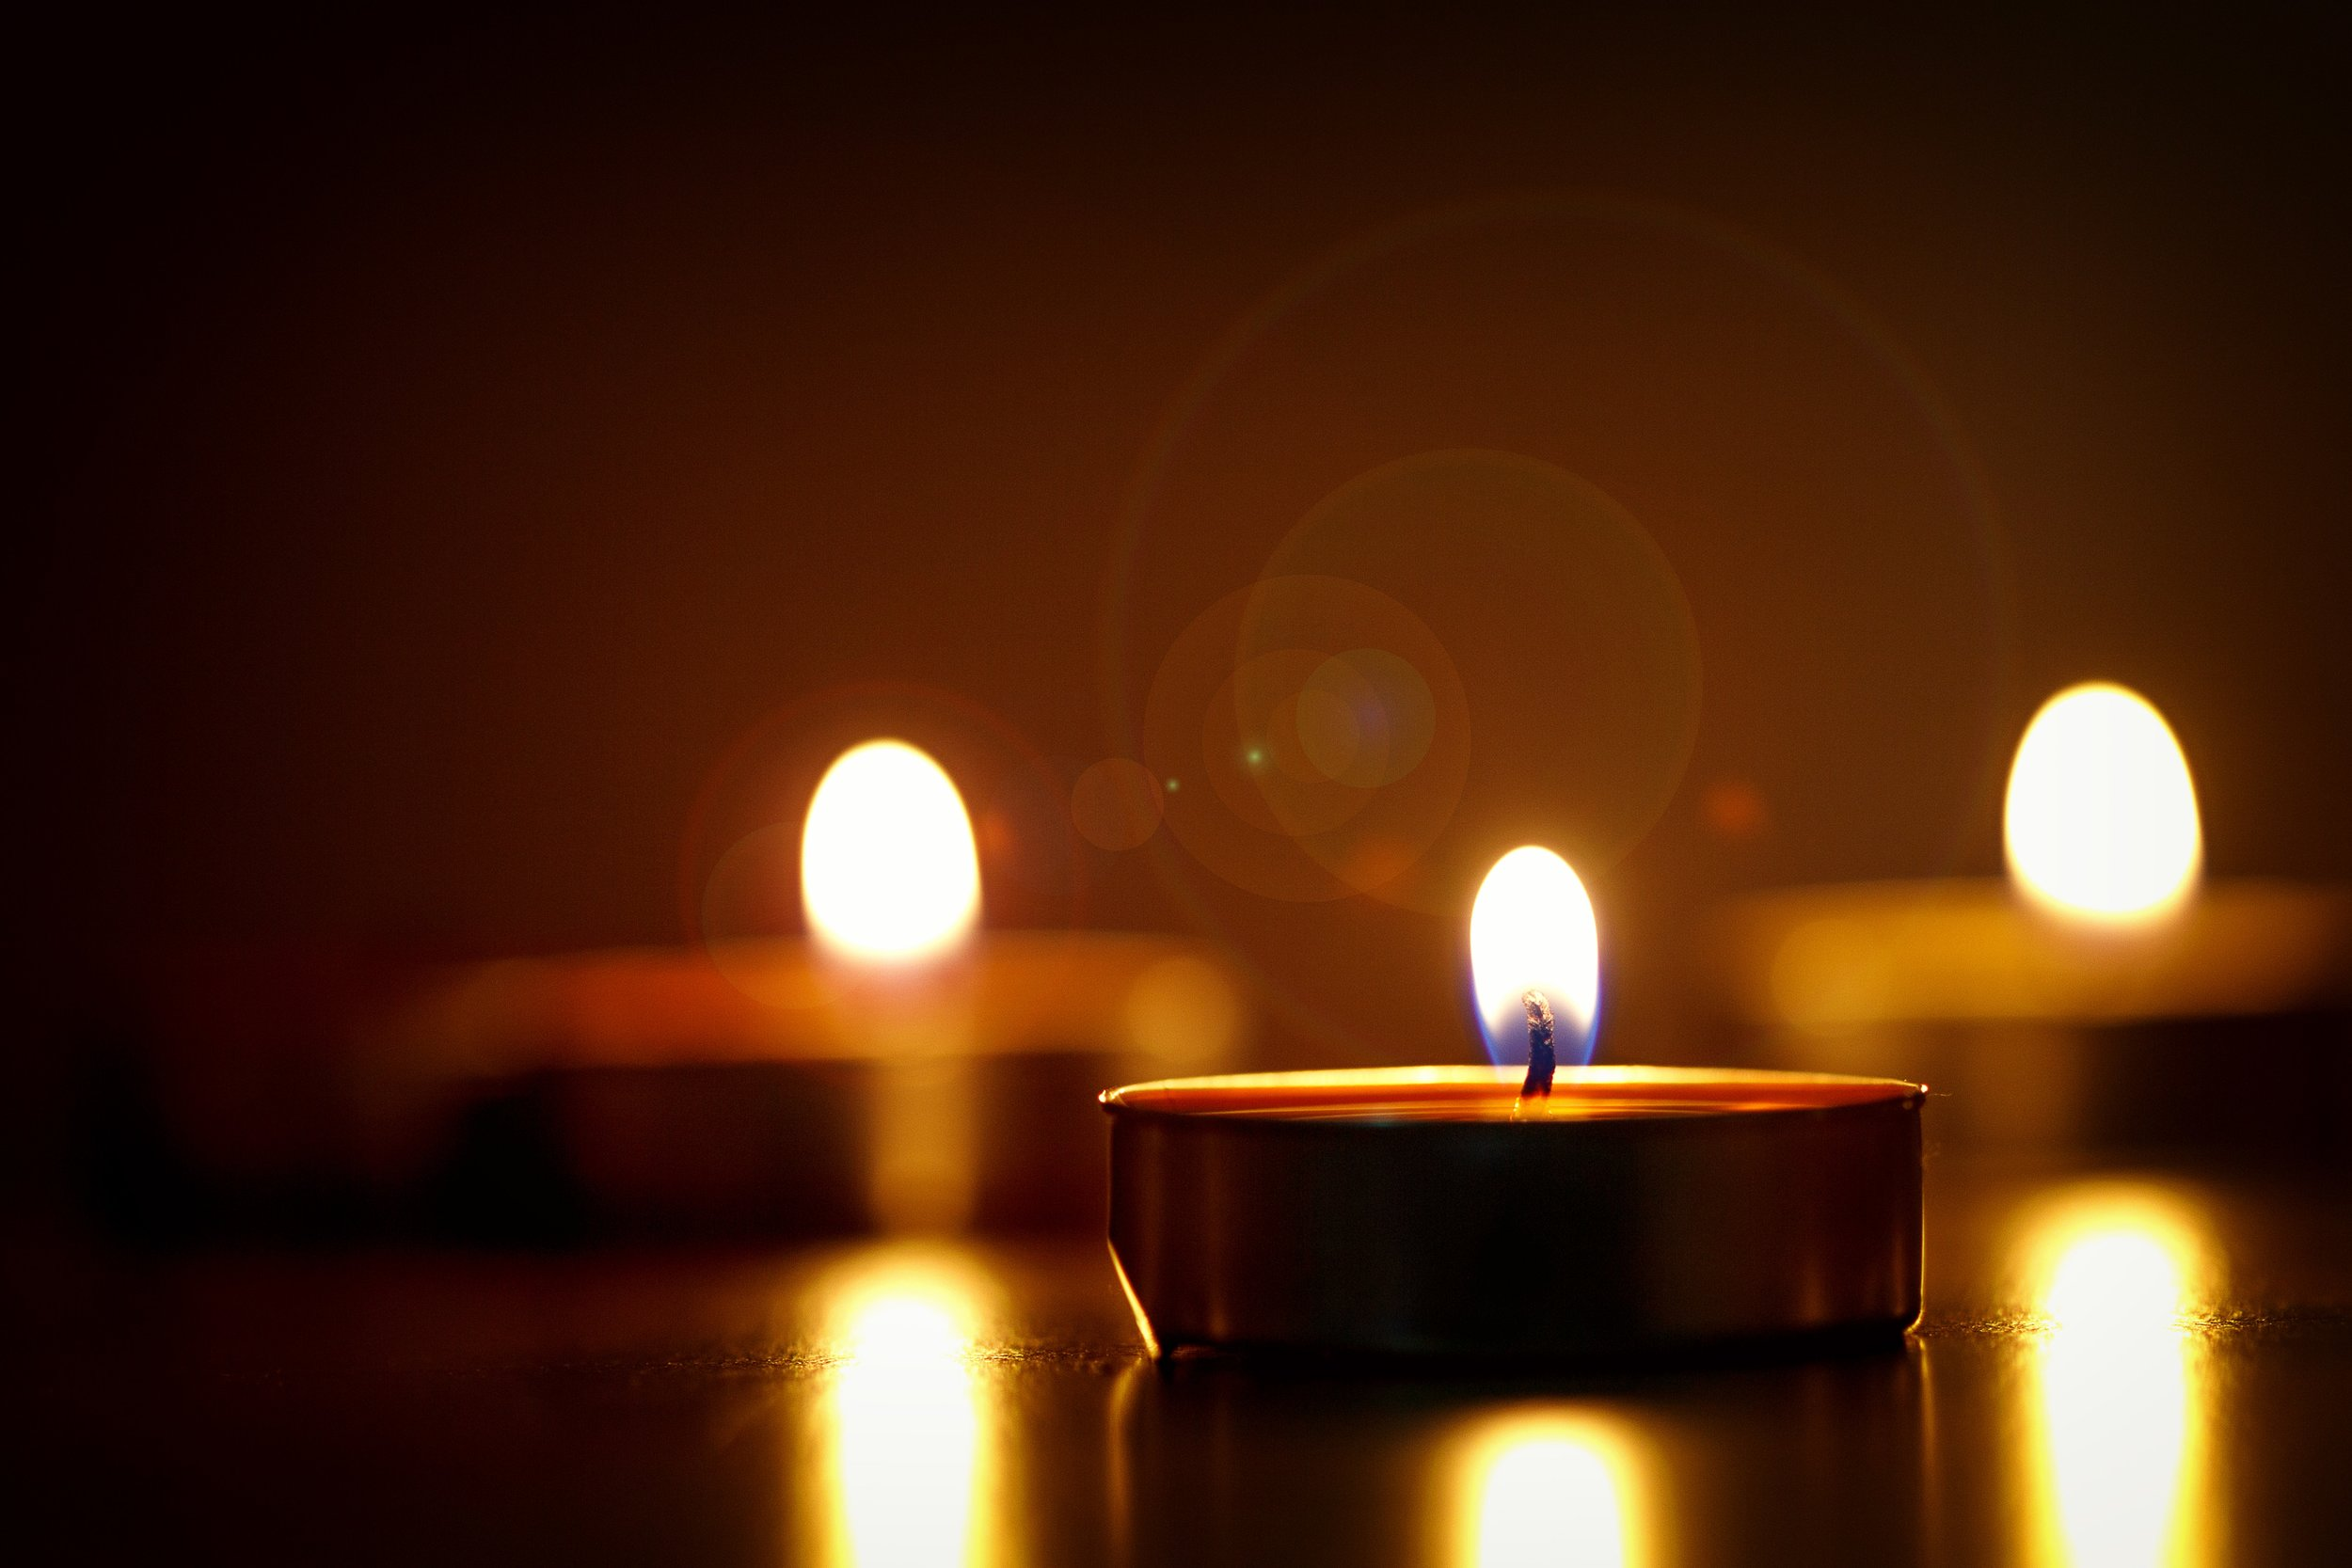 blur-bright-candlelights-722653 (1).jpg